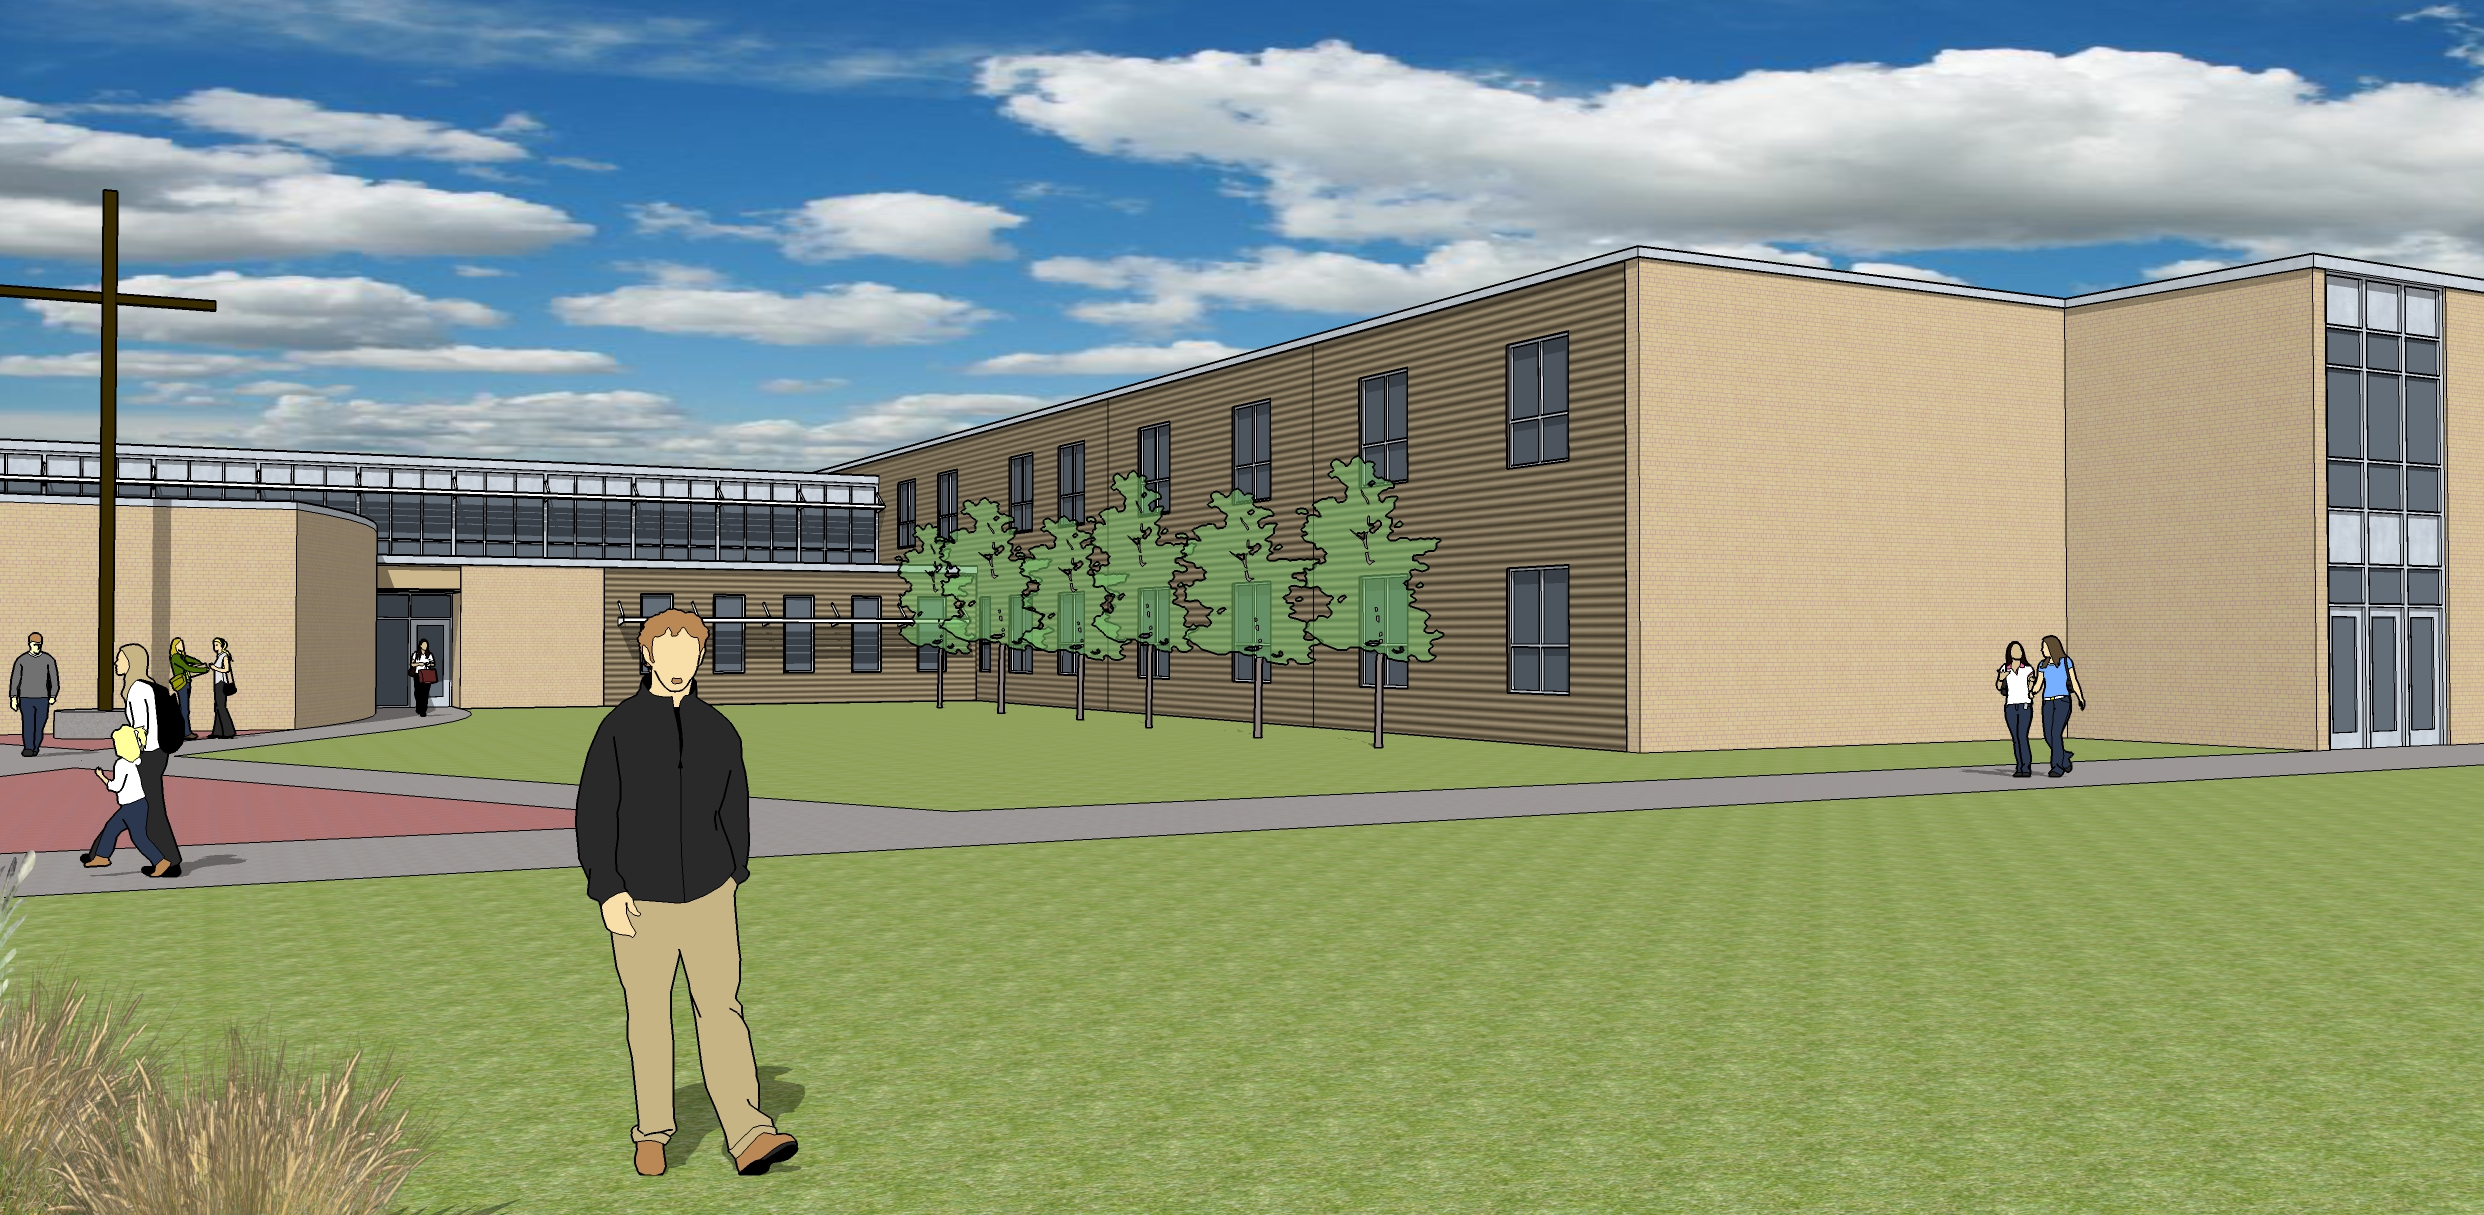 Wahlert Catholic completed a $17M renovation this year, just in time for the Class of 2022!